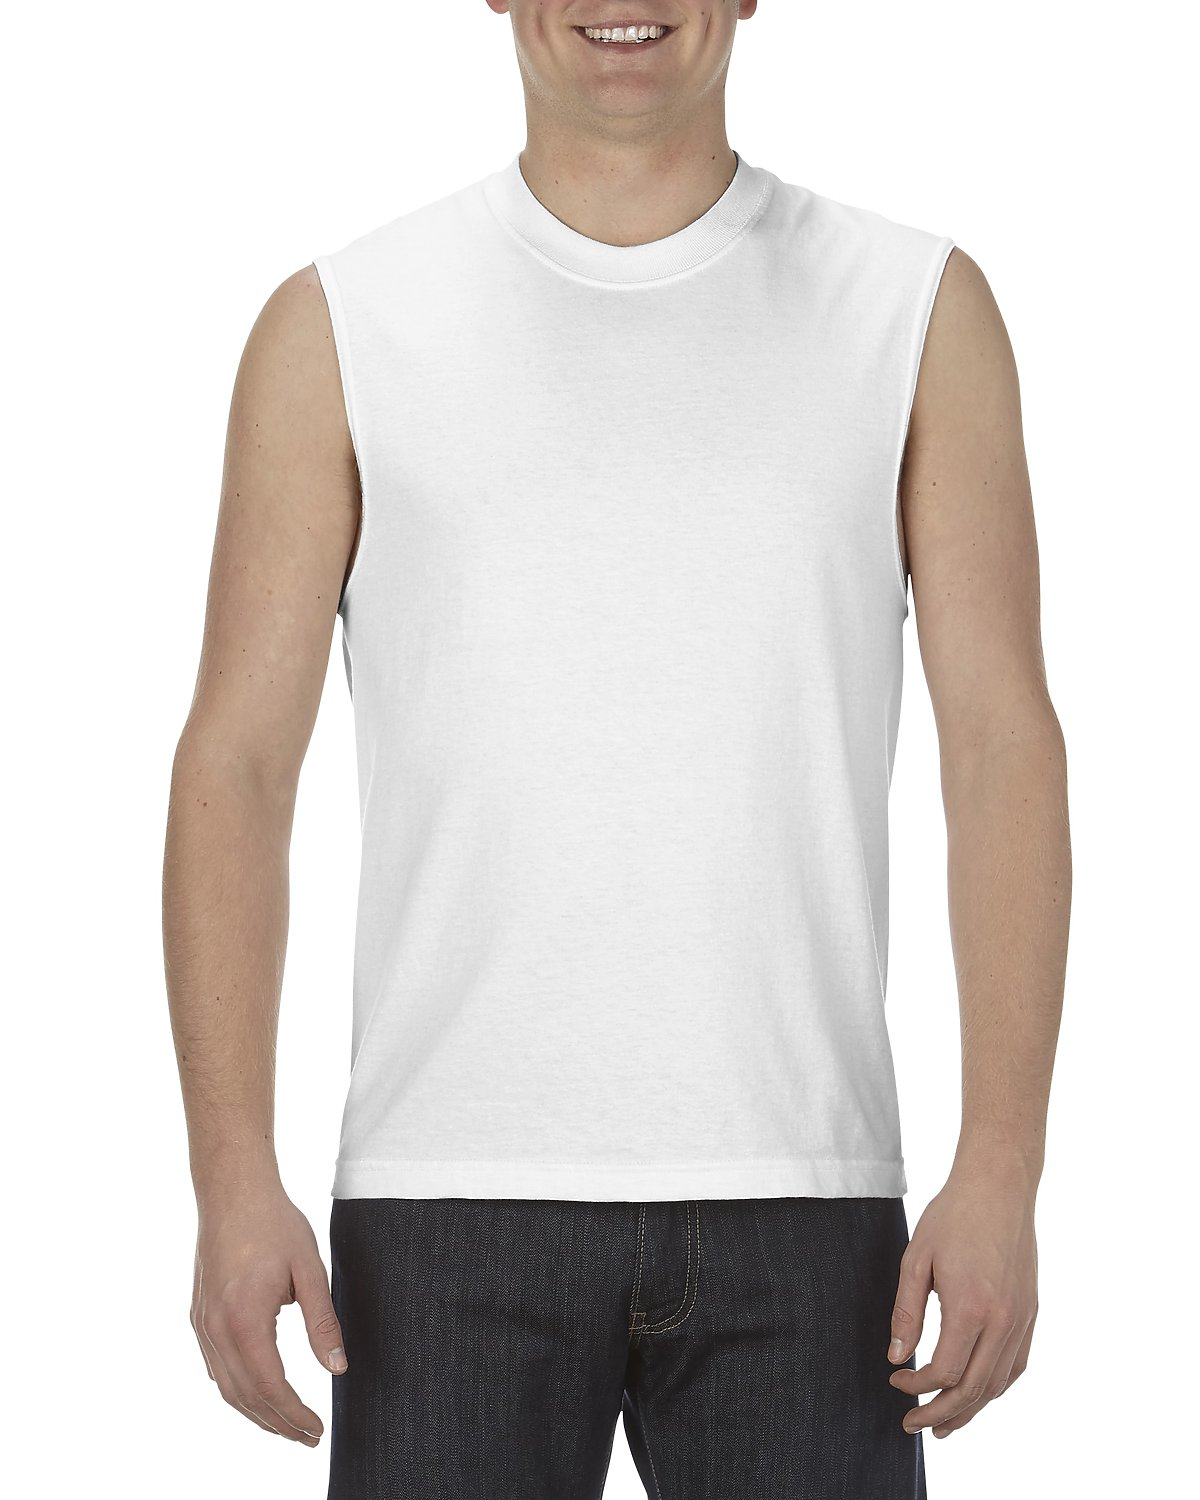 1308  Adult Sleeveless Tee